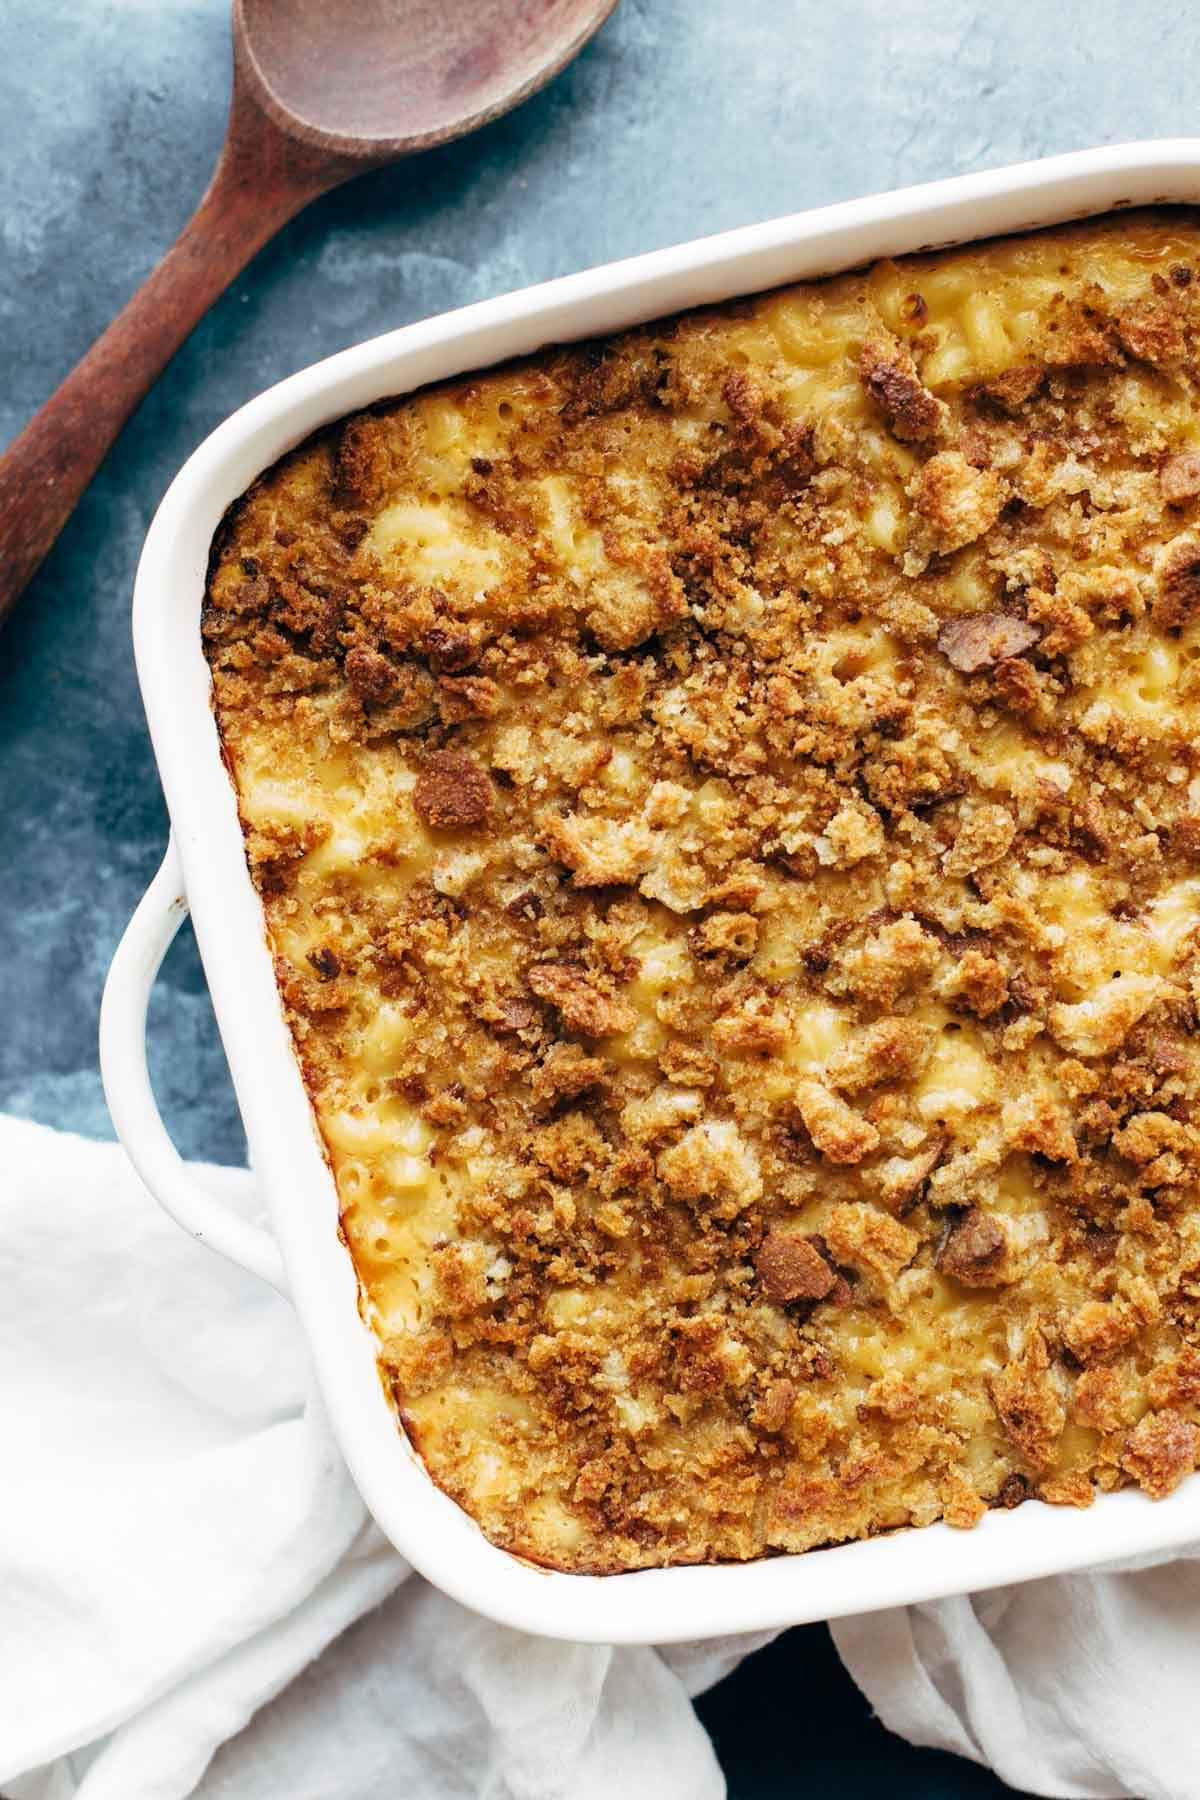 Baked Mac and Cheese - simple ingredients, OMG mac and cheese vibes. perfect comfort food!   pinchofyum.com